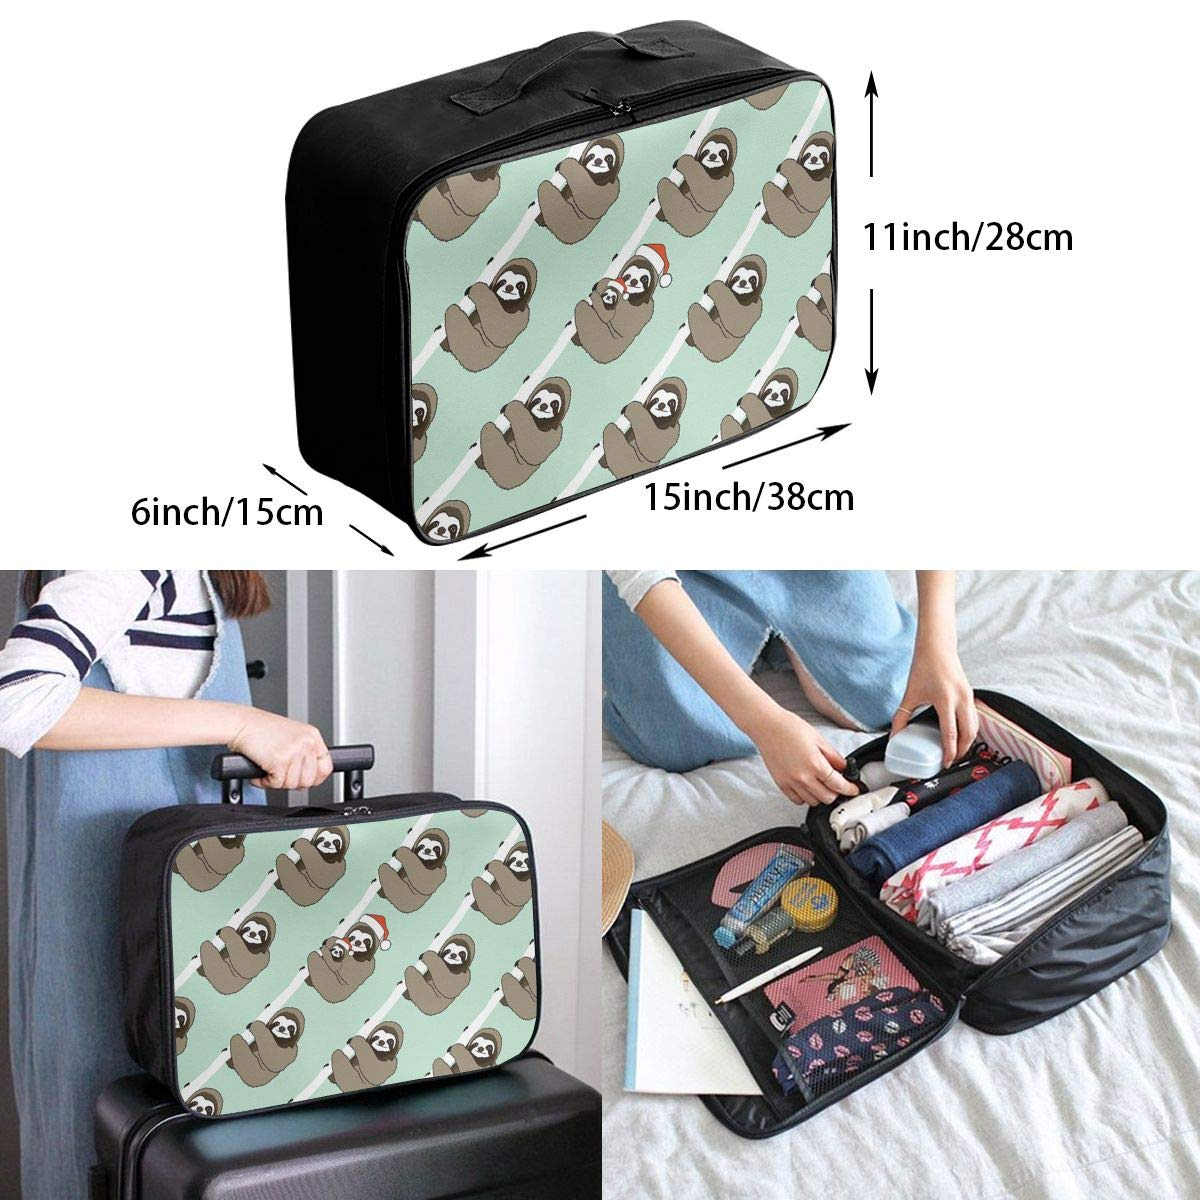 Travel Luggage Duffle Bag Lightweight Portable Handbag Sloth Print Large Capacity Waterproof Foldable Storage Tote